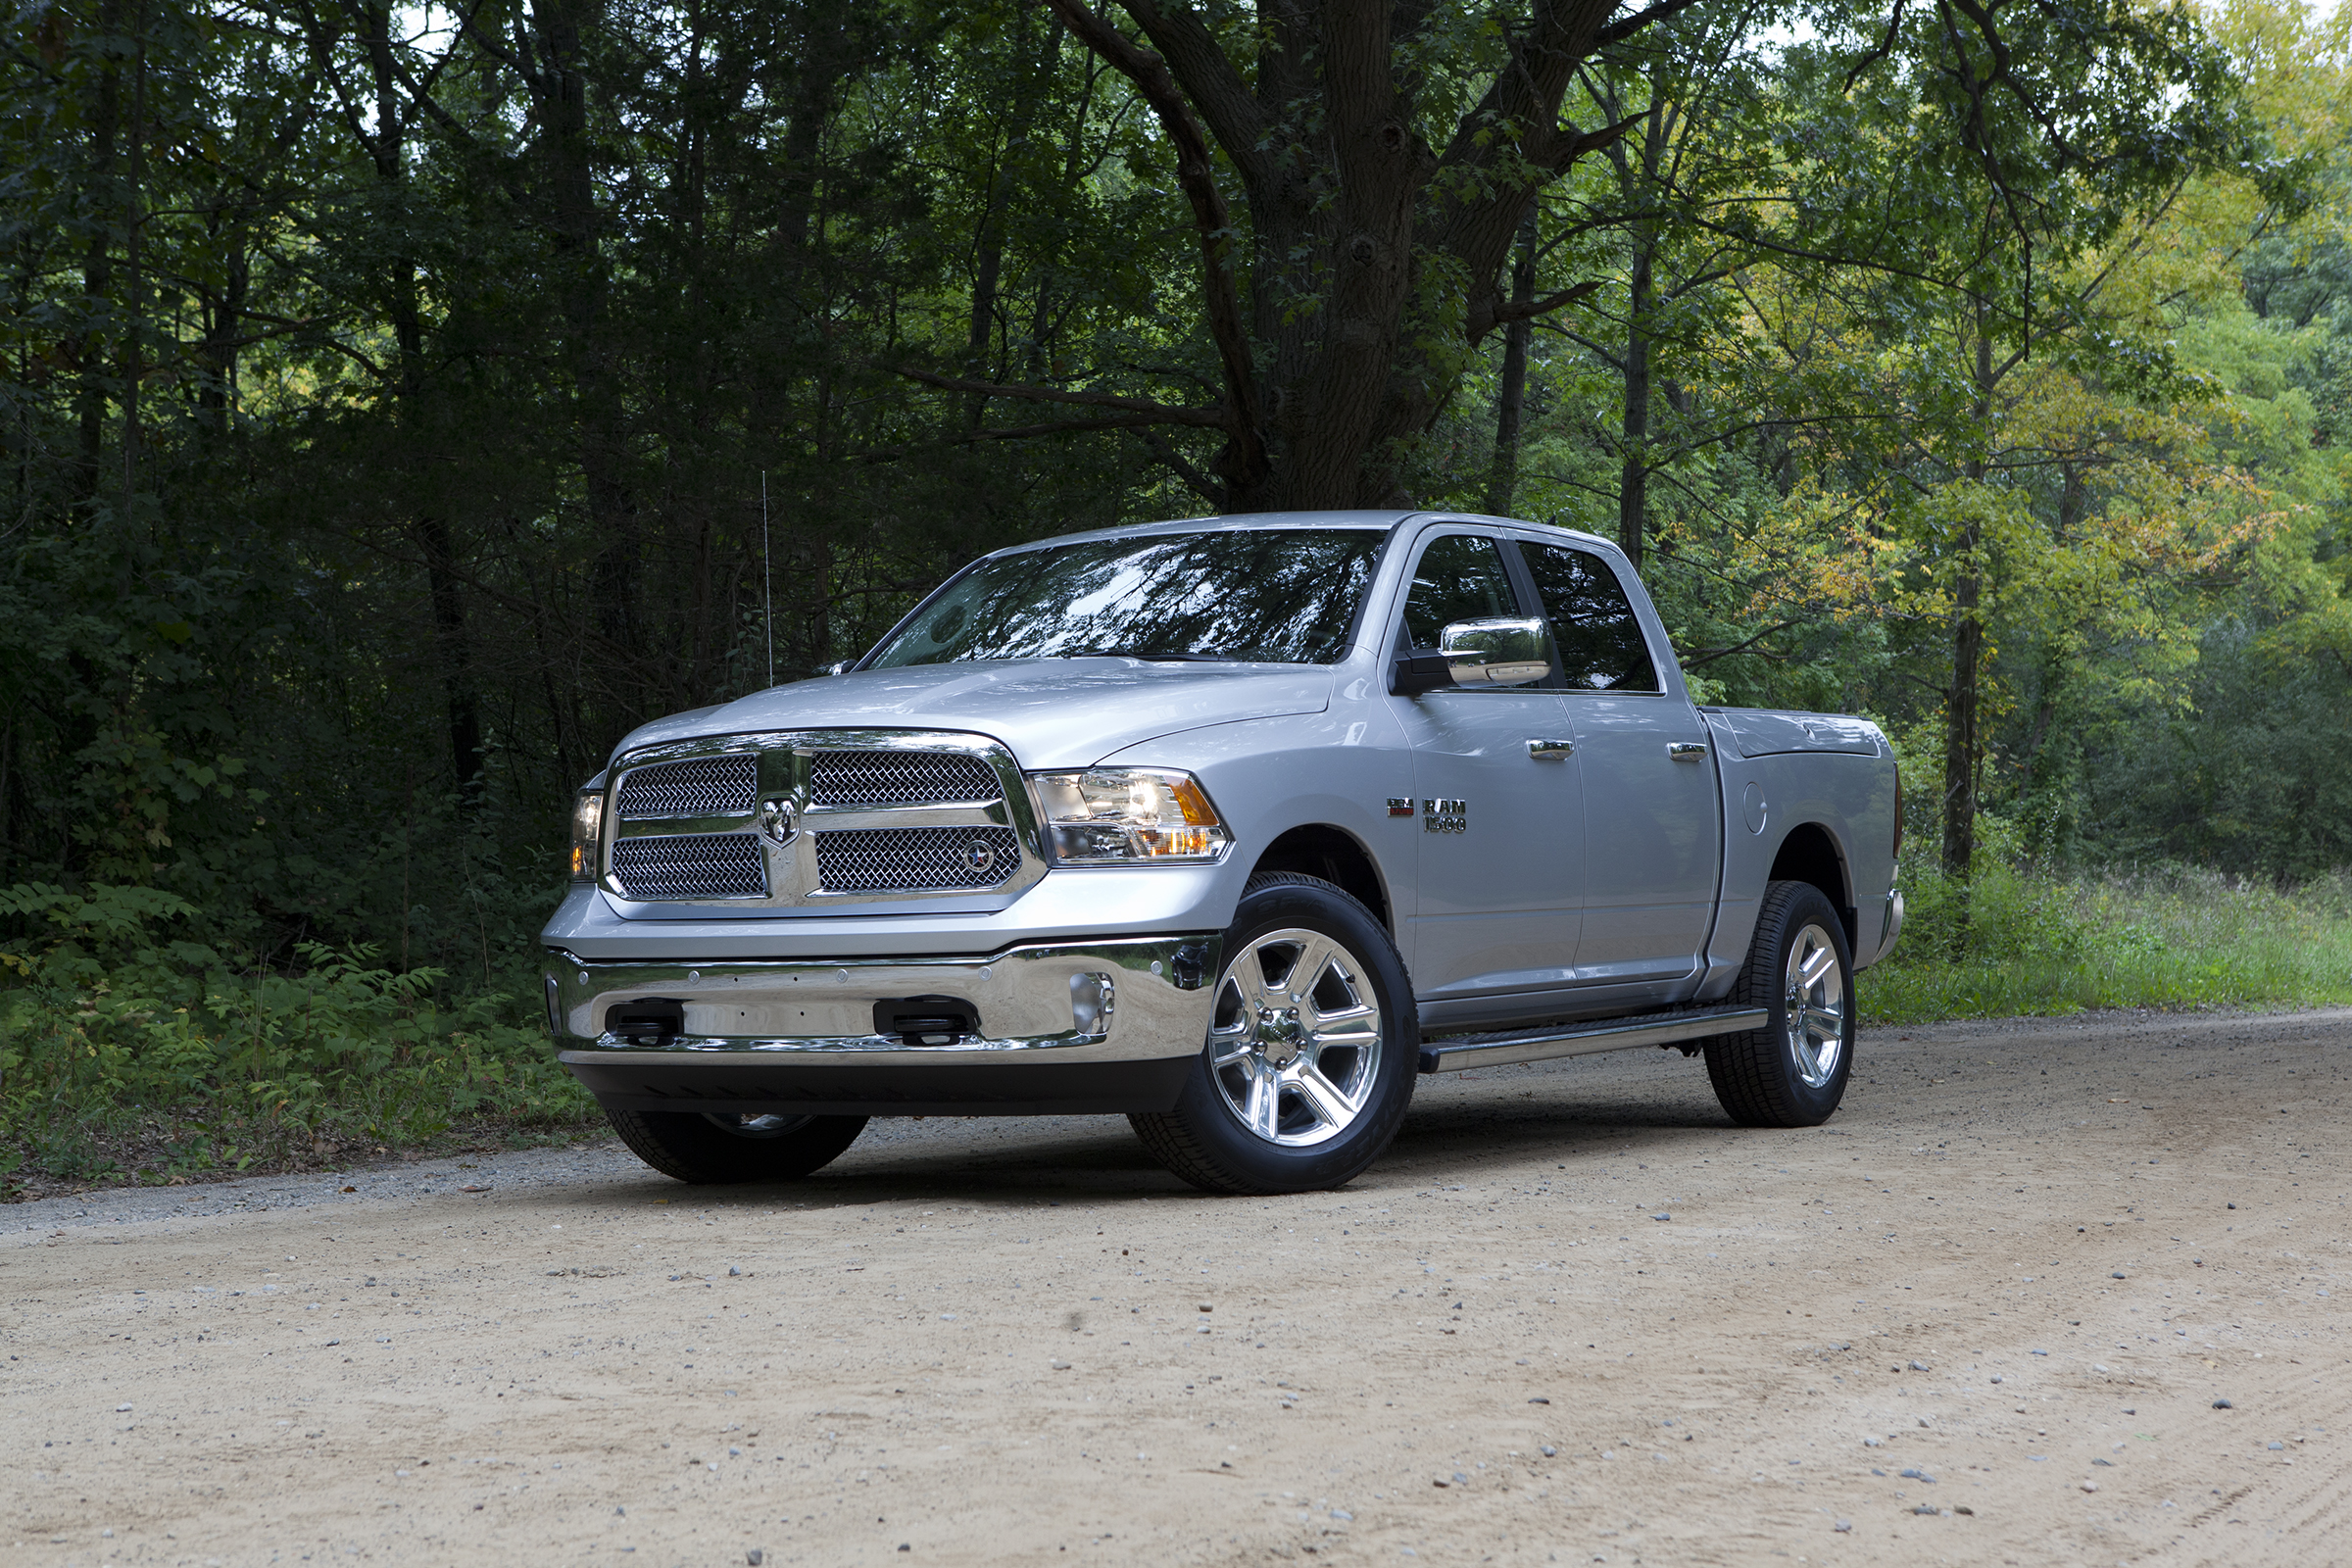 Dodge Trucks 2016 >> 2017 Ram 1500 Updates Include Lone Star Silver Edition - autoevolution